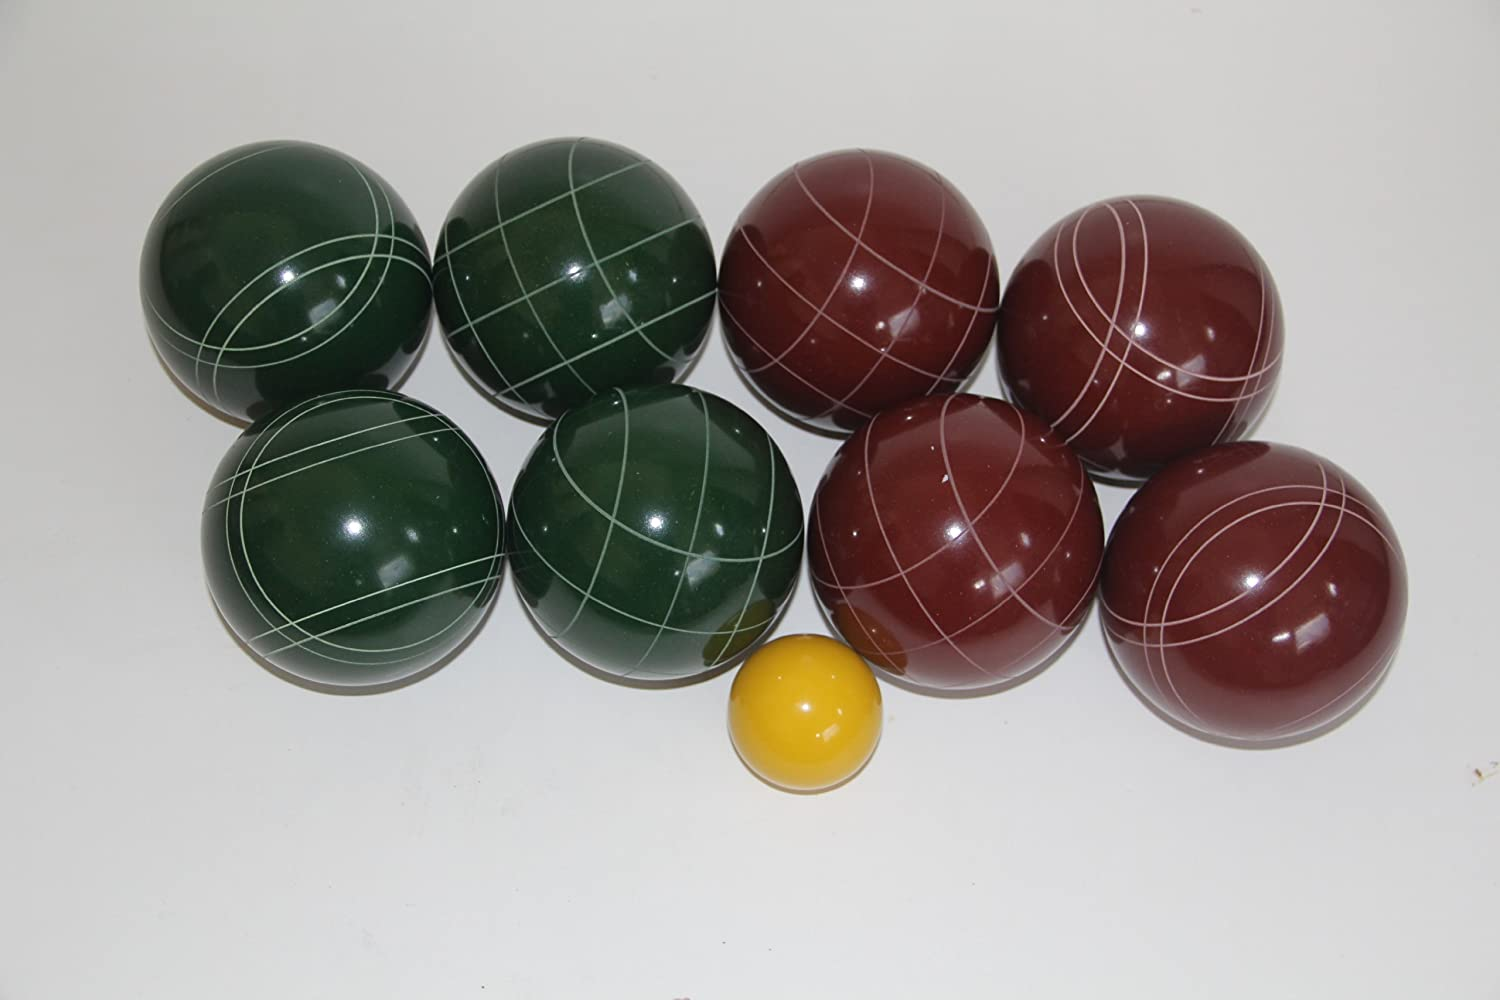 Premium Quality EPCO Tournament Bocce Set – 107mm Red and Green Bocce Balls -… jetzt bestellen